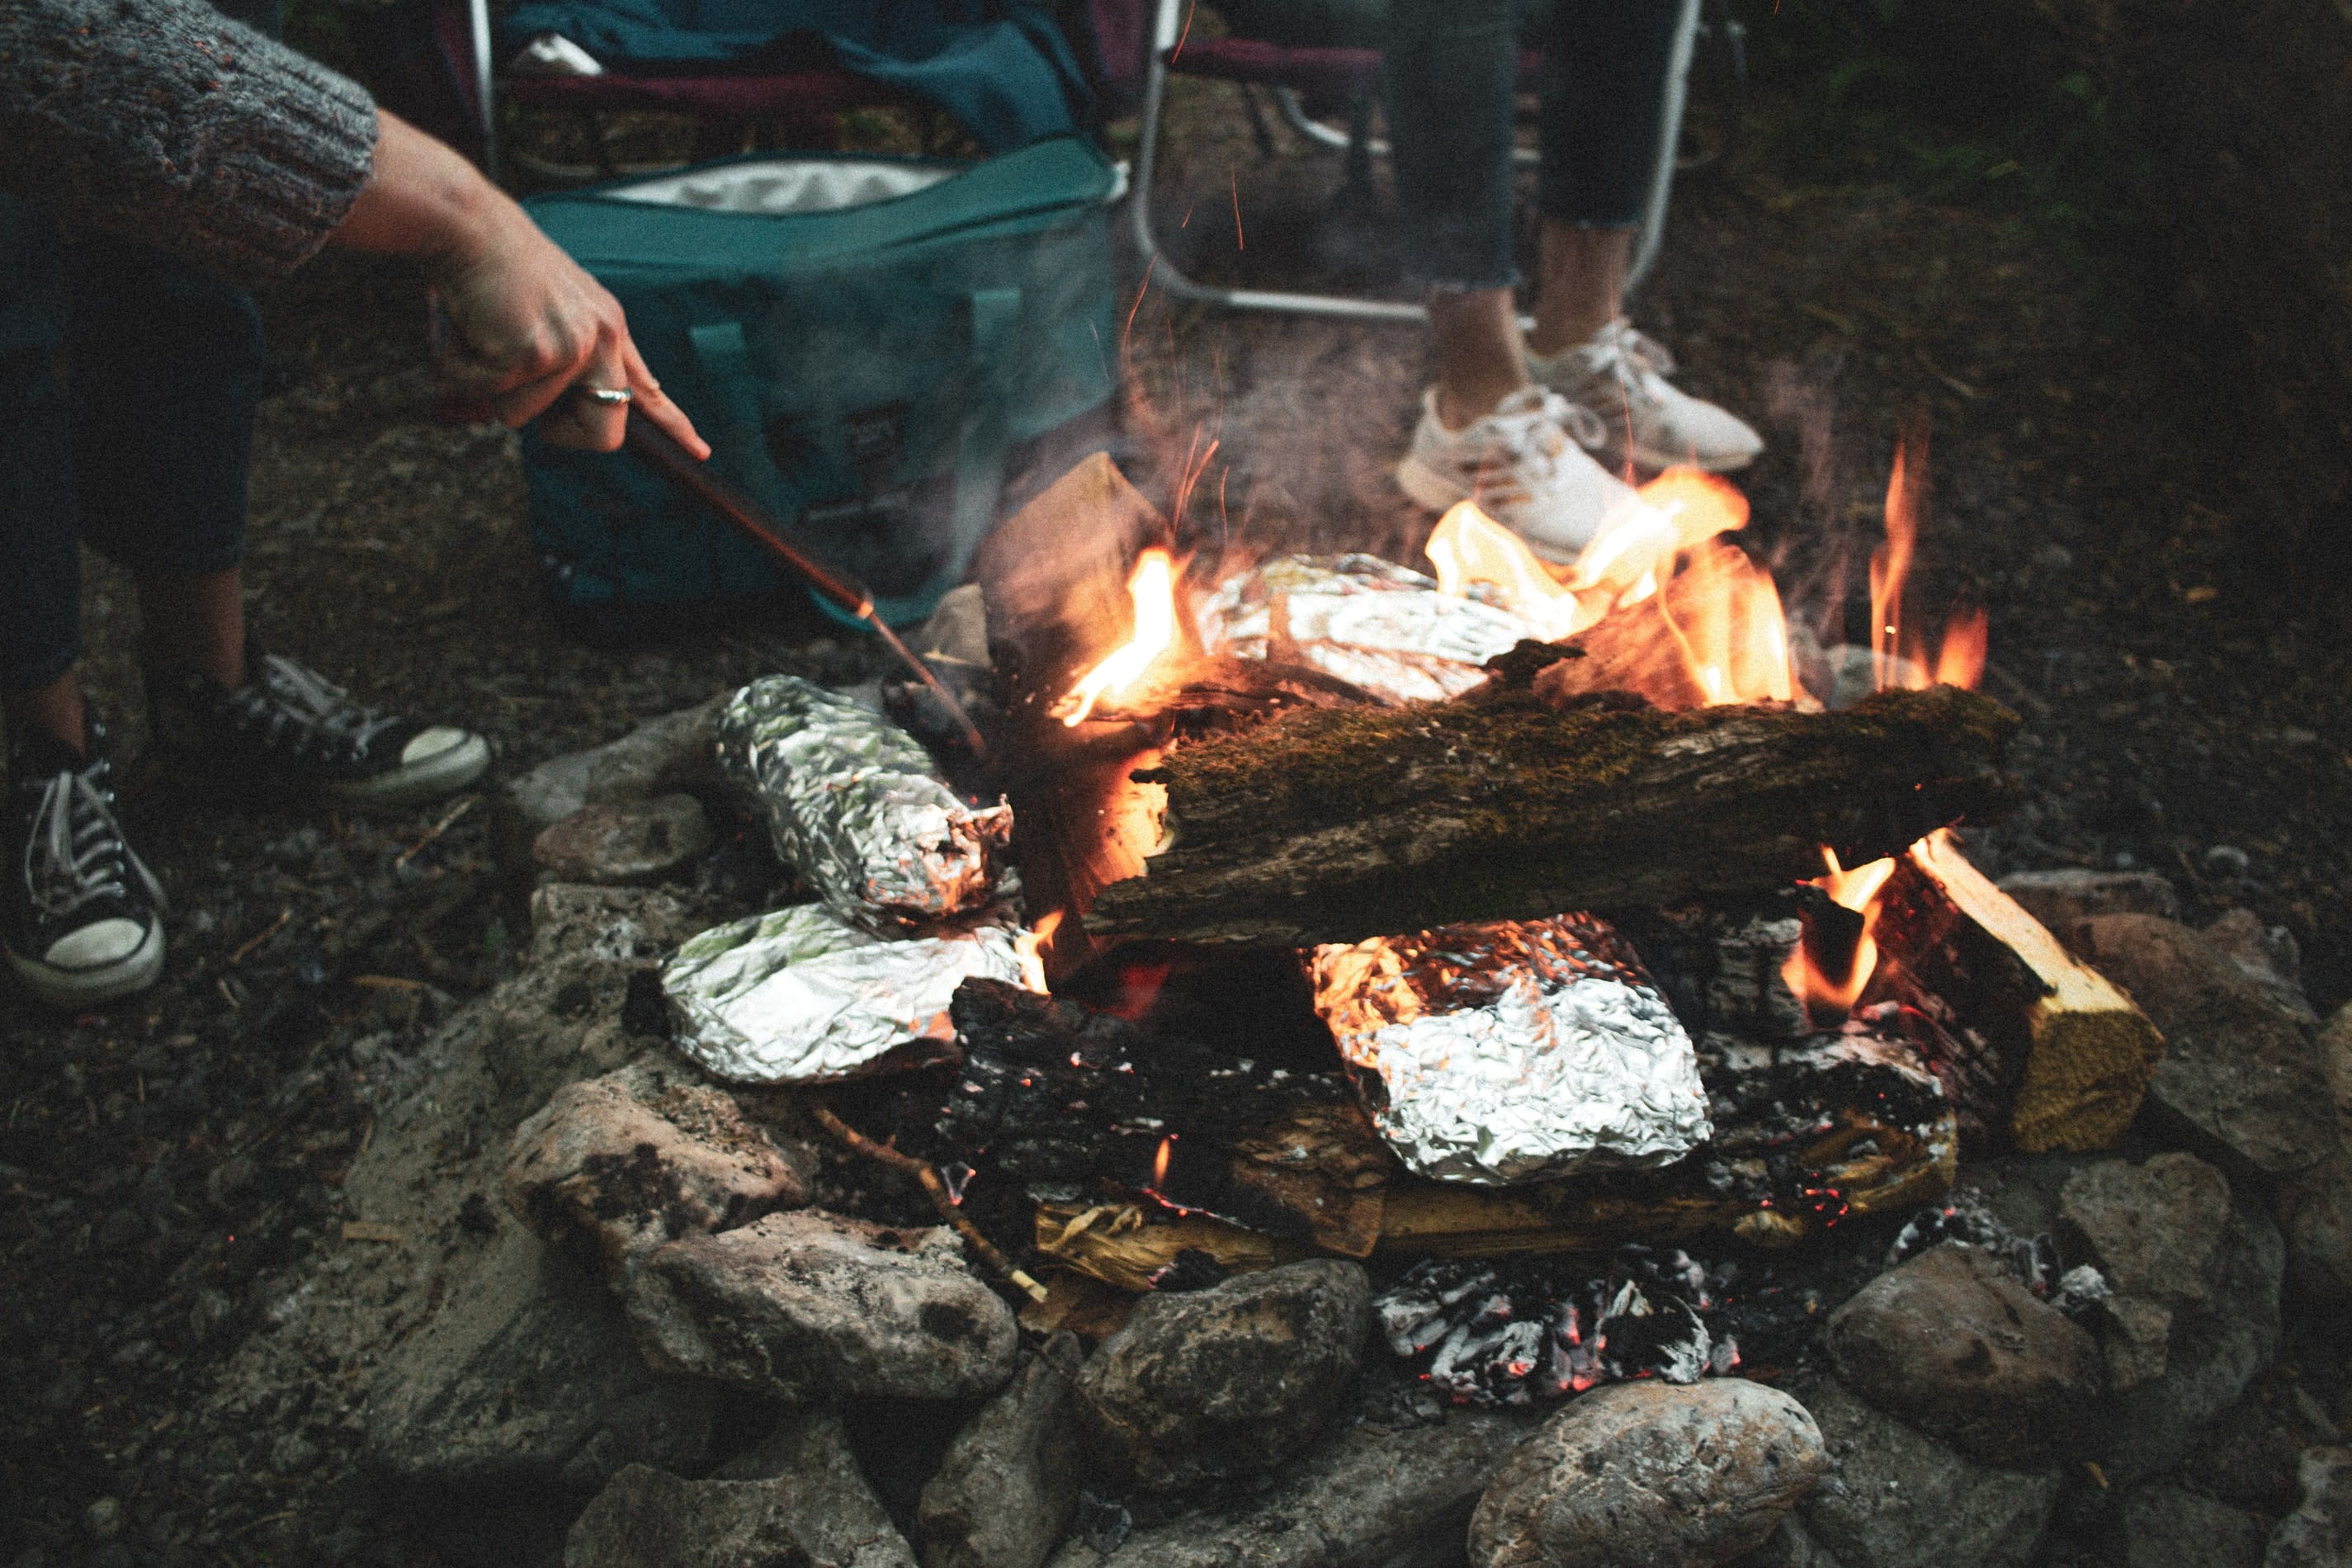 People cooking around a campfire